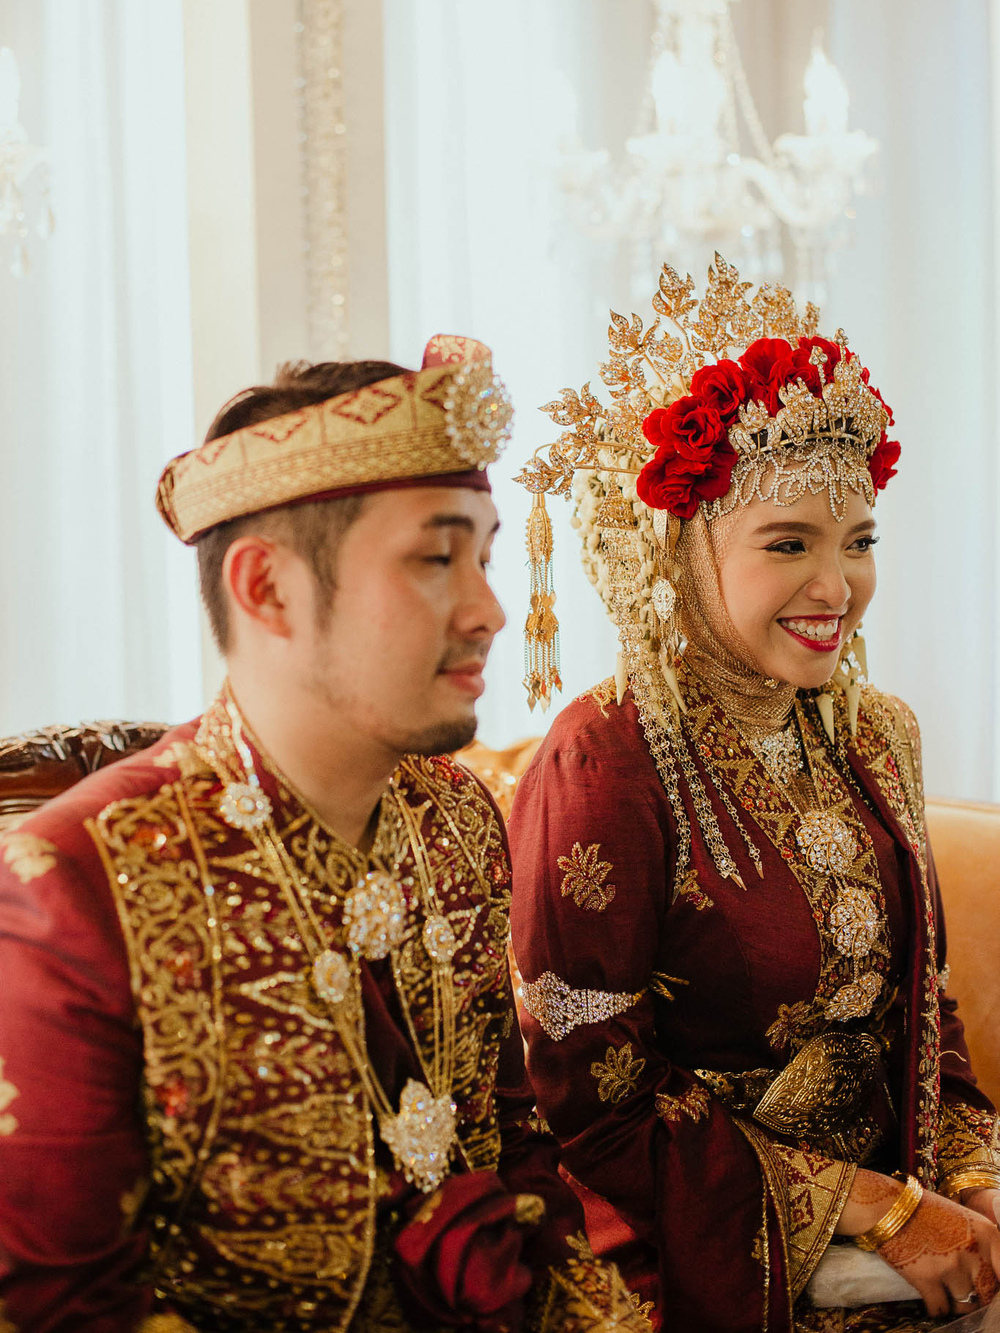 singapore-wedding-photographer-travel-wemadethese-atara-hafizah-54.jpg